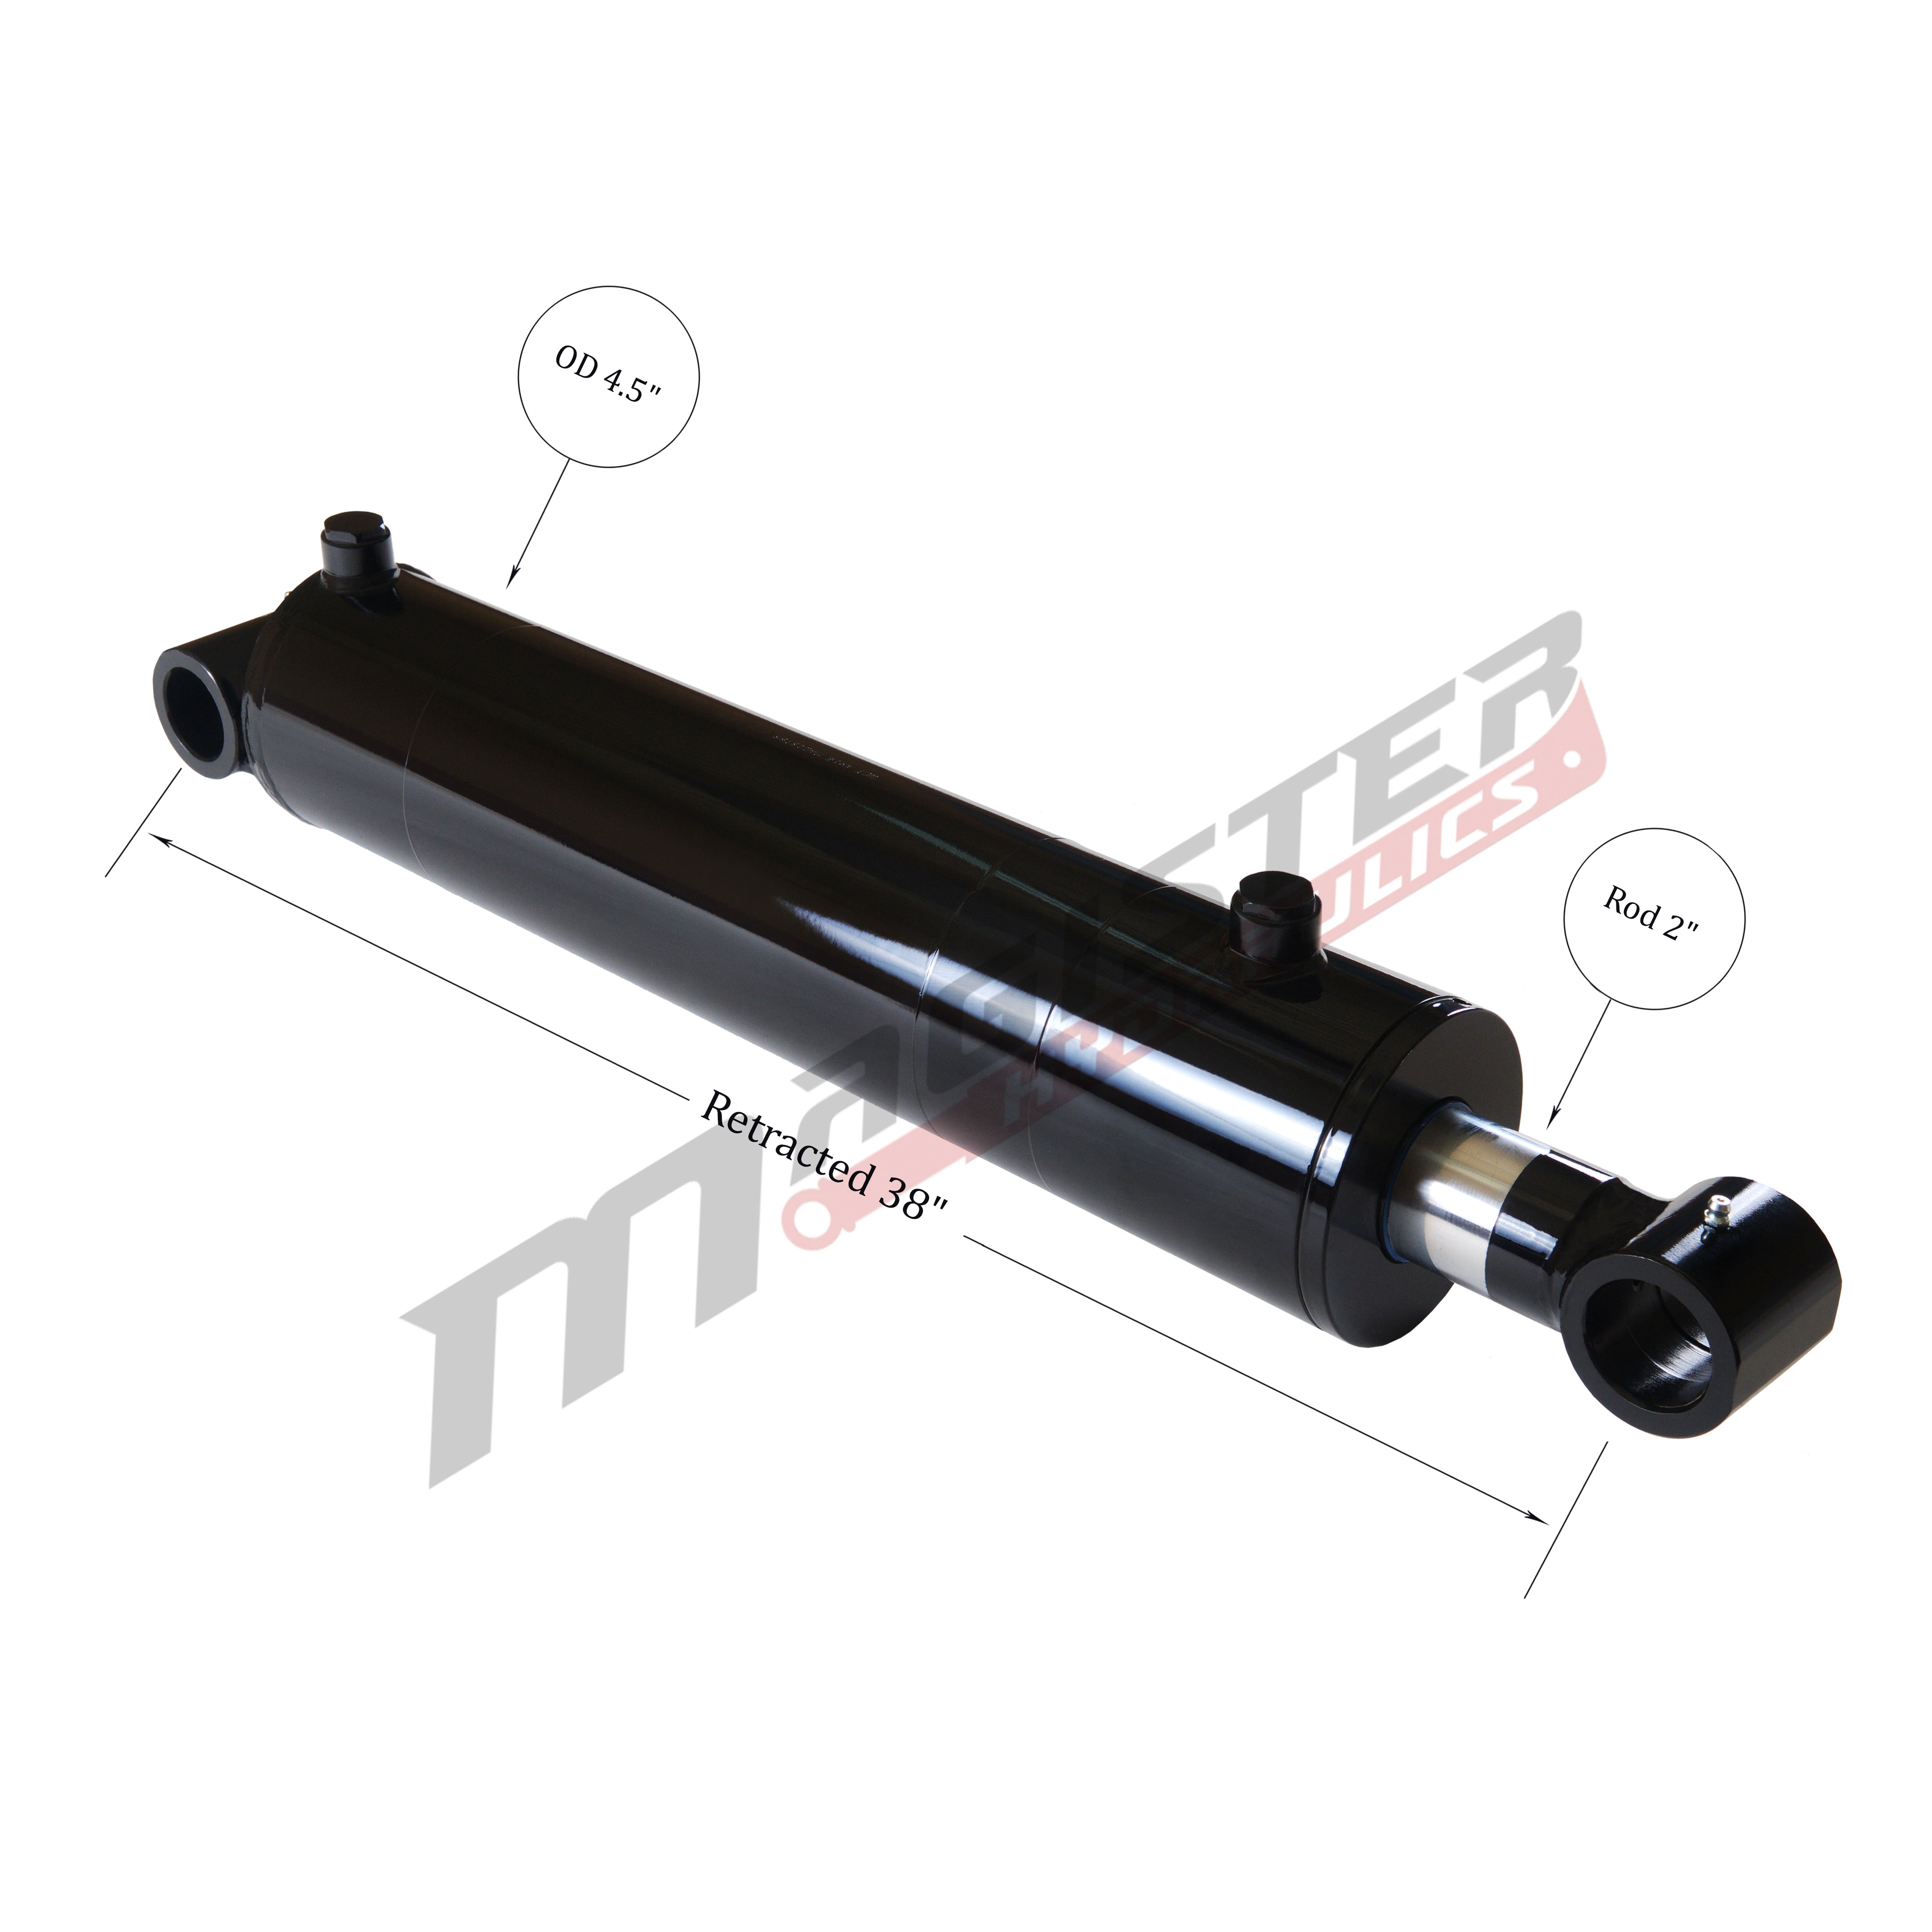 4 bore x 28 stroke hydraulic cylinder, welded cross tube double acting cylinder | Magister Hydraulics